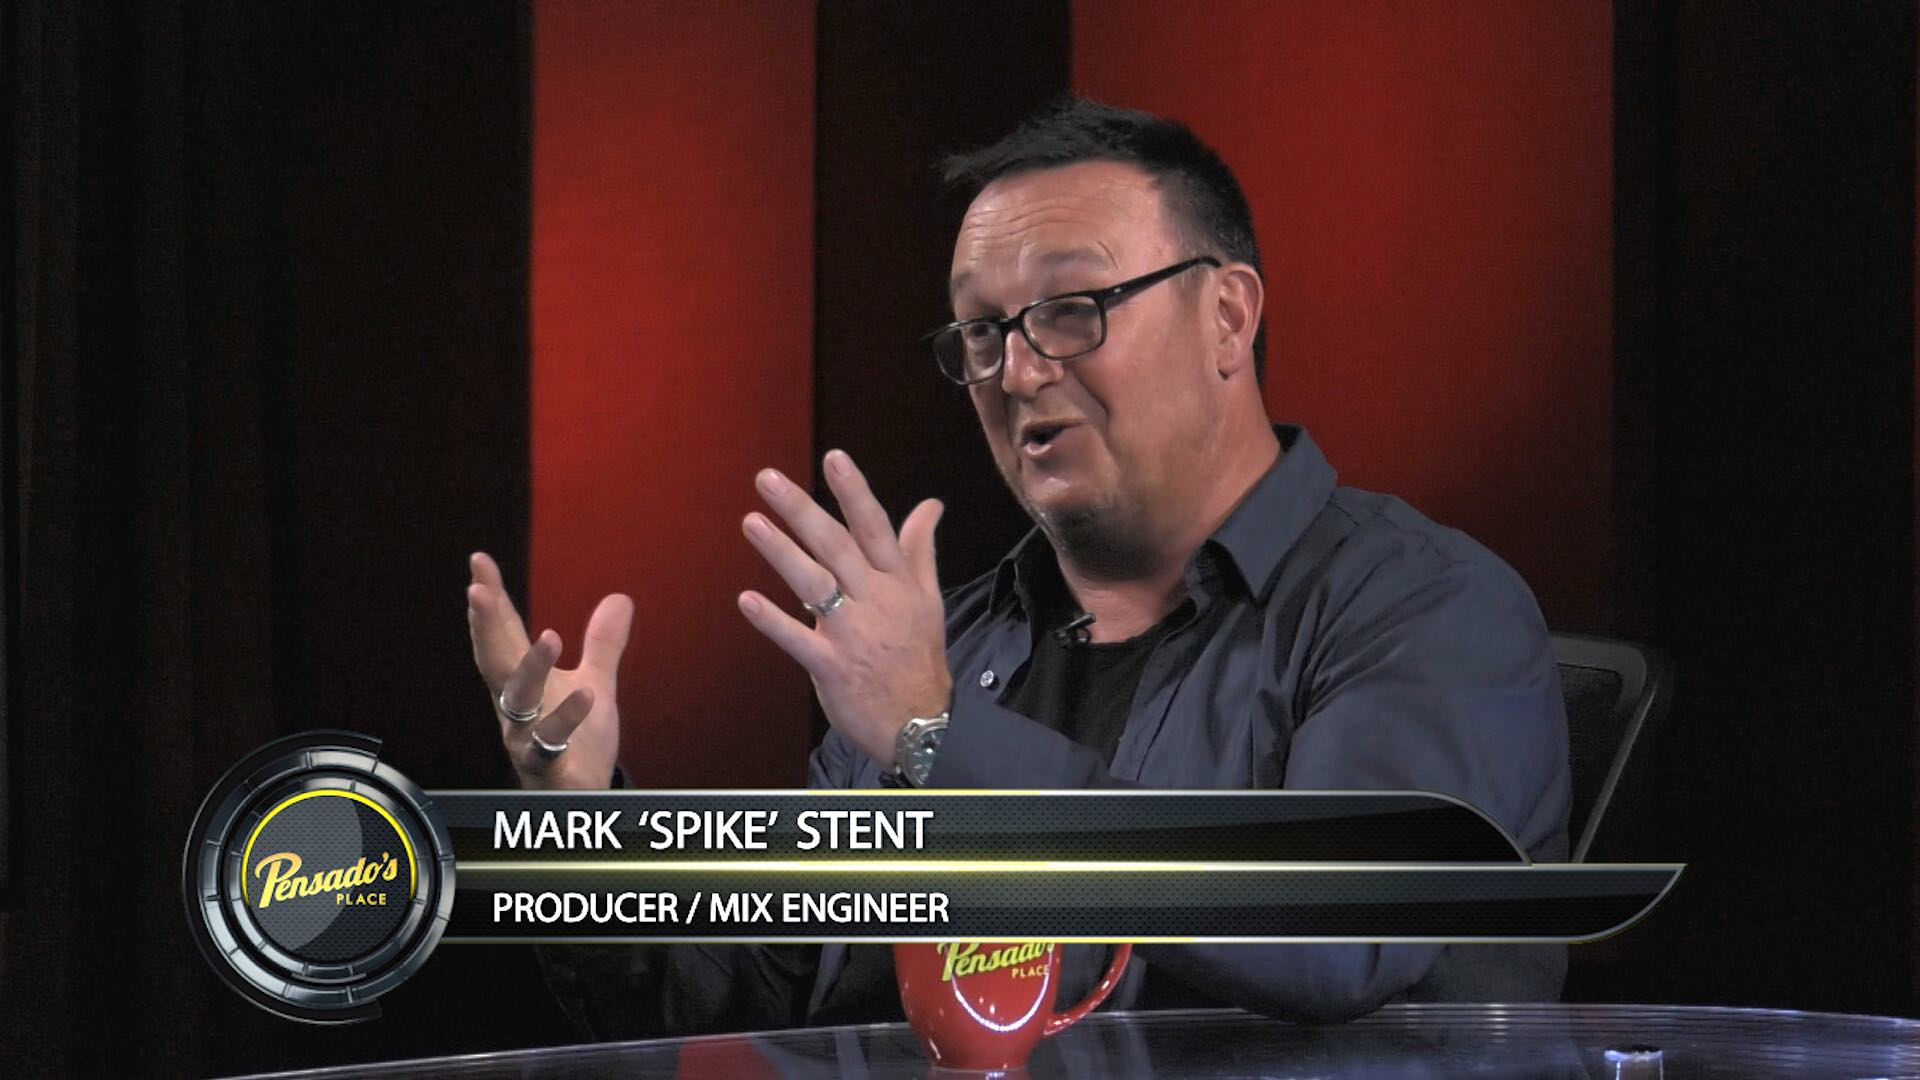 Mark 'Spike' Stent – Producer, Mix Engineer